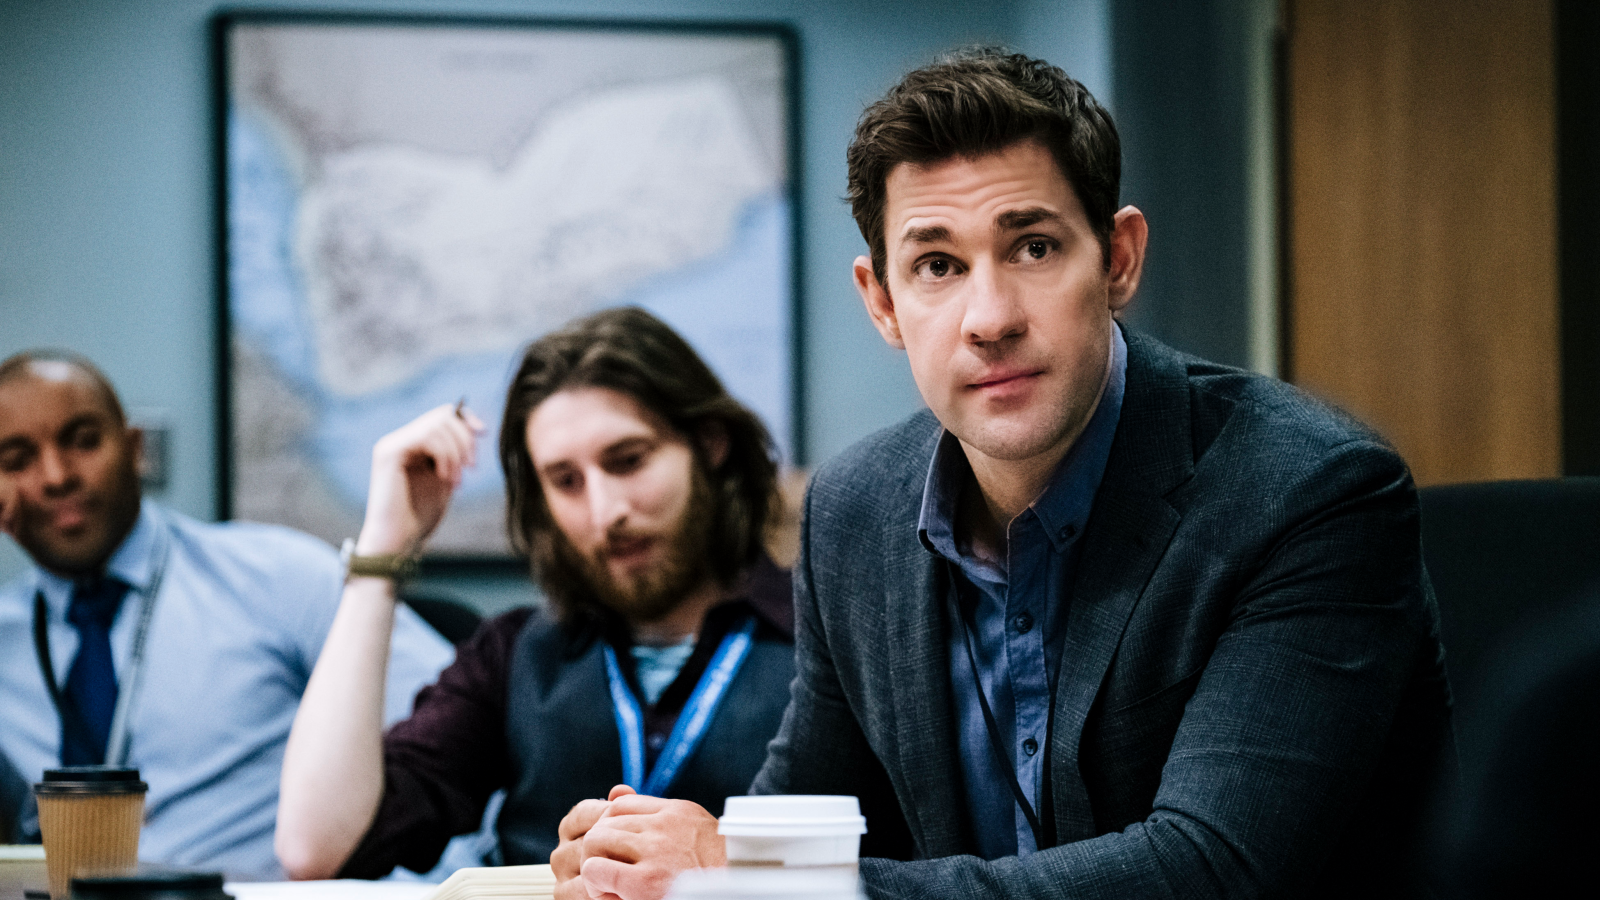 Season 2 of Jack Ryan will be about the decline of democracy.